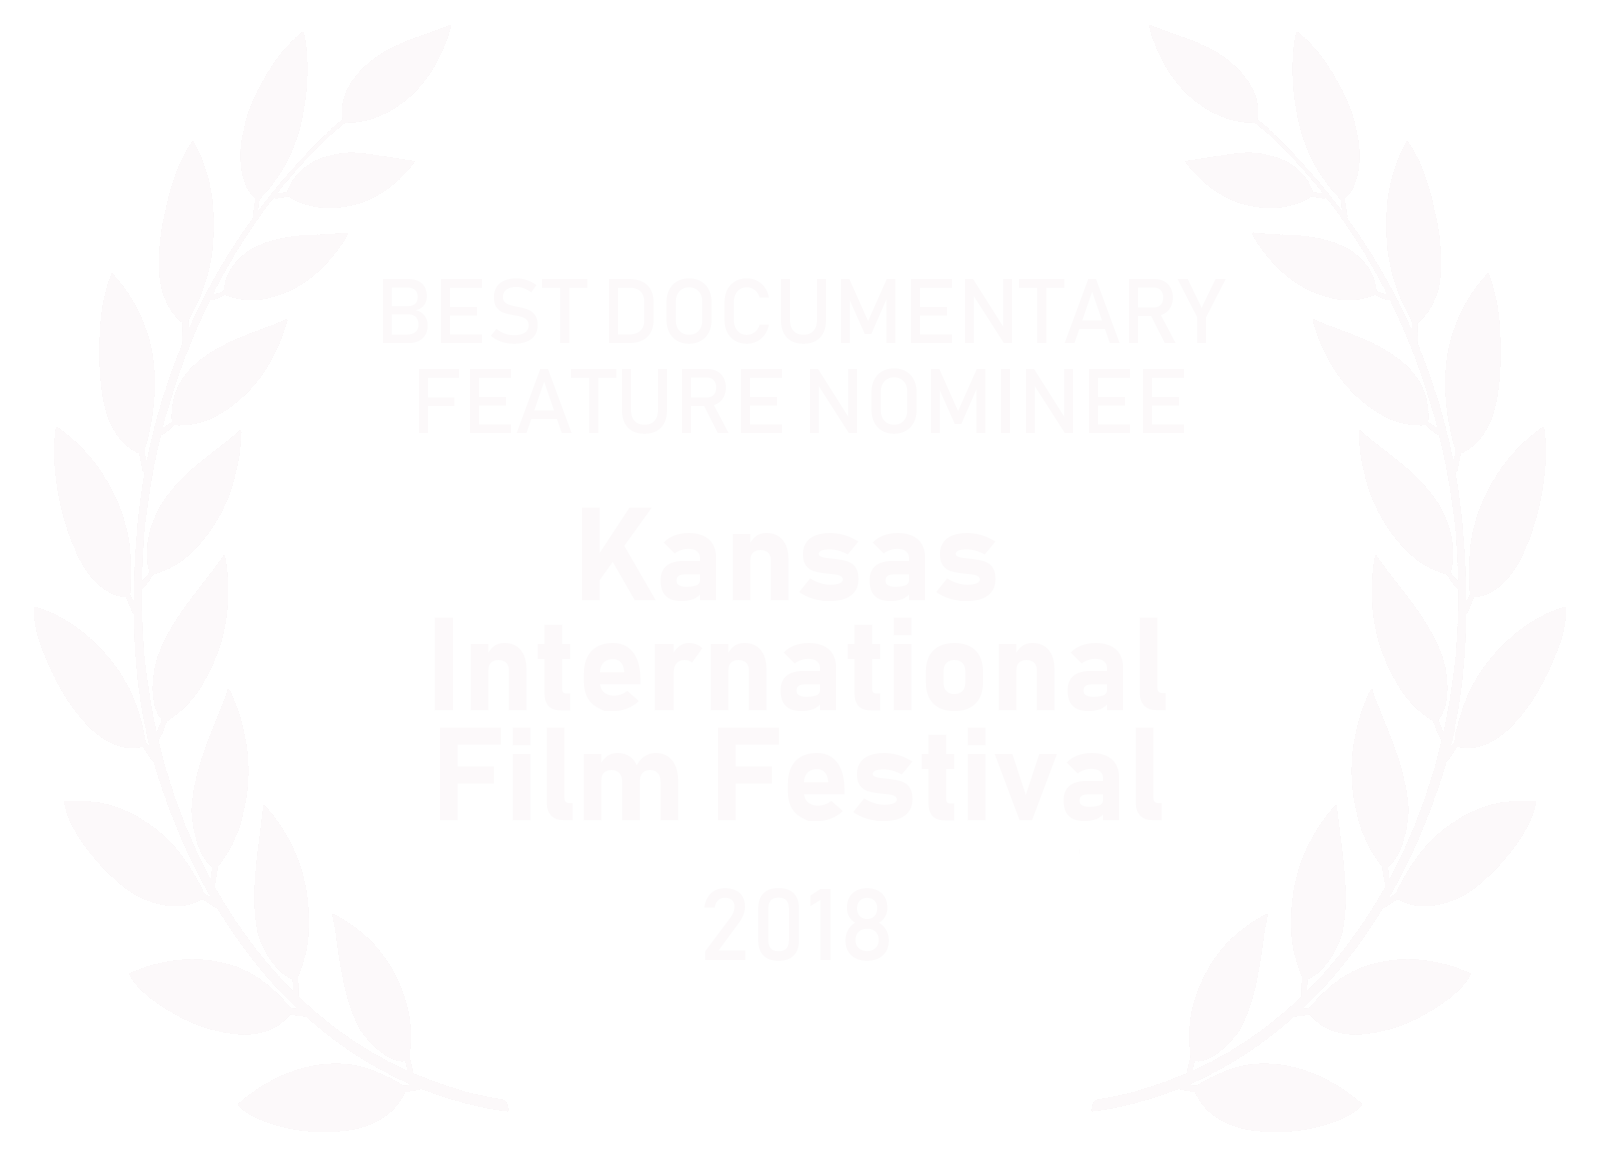 Kansas International Film Festival (Oct 2018) -